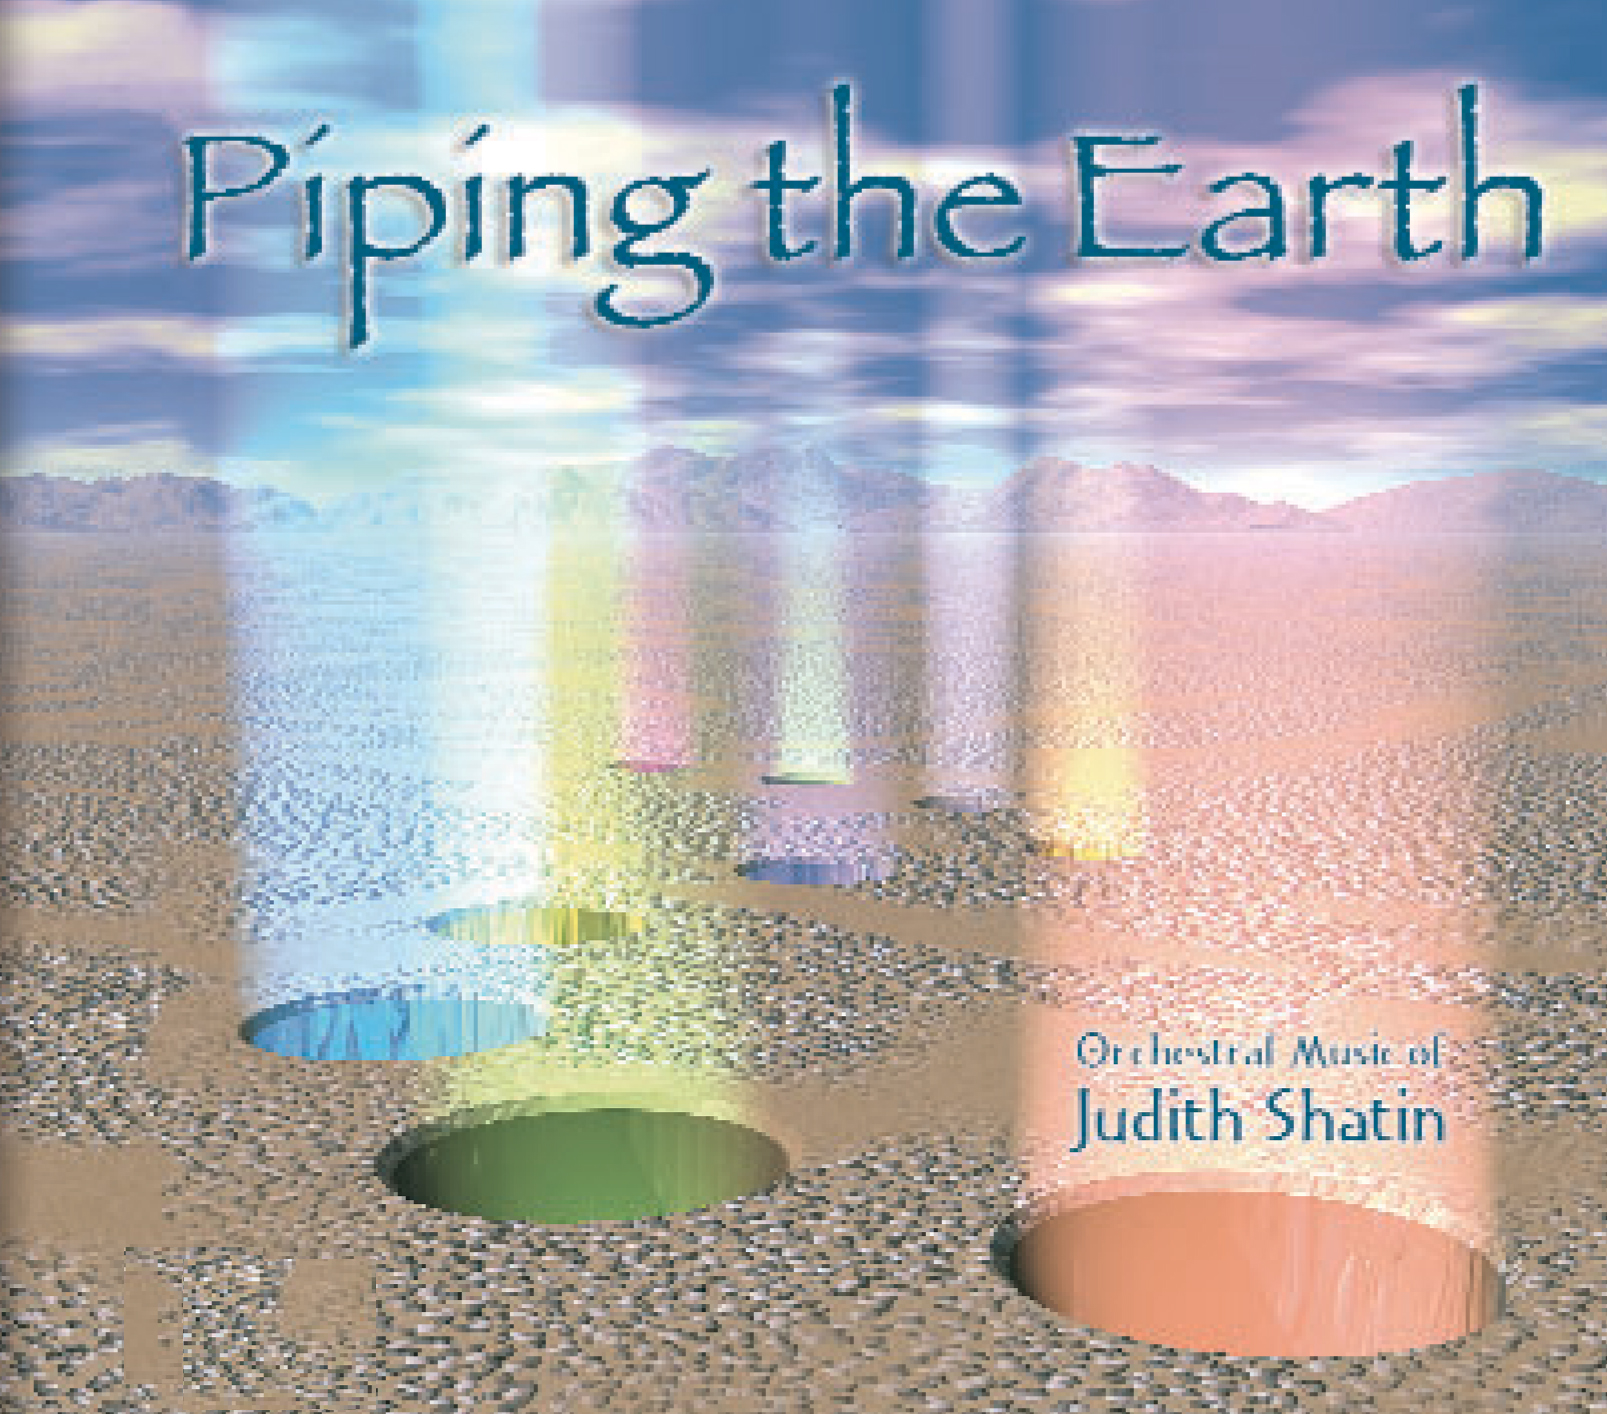 Piping theEarth